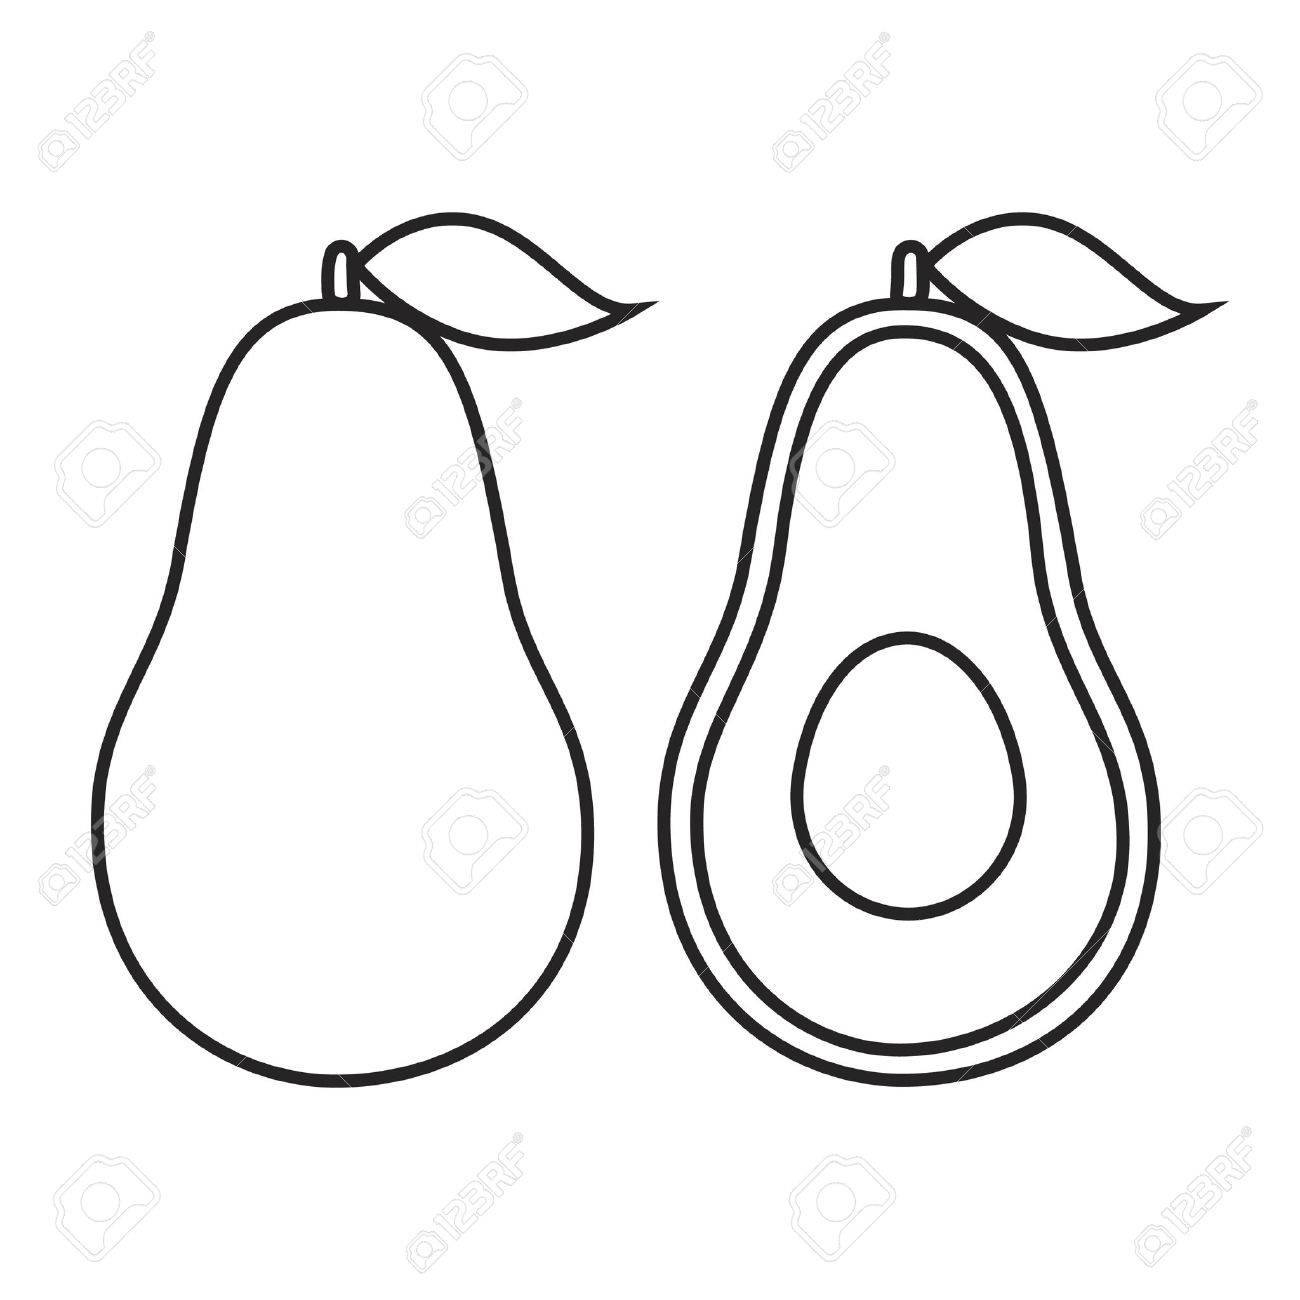 Avocado black and white clipart 3 » Clipart Station.